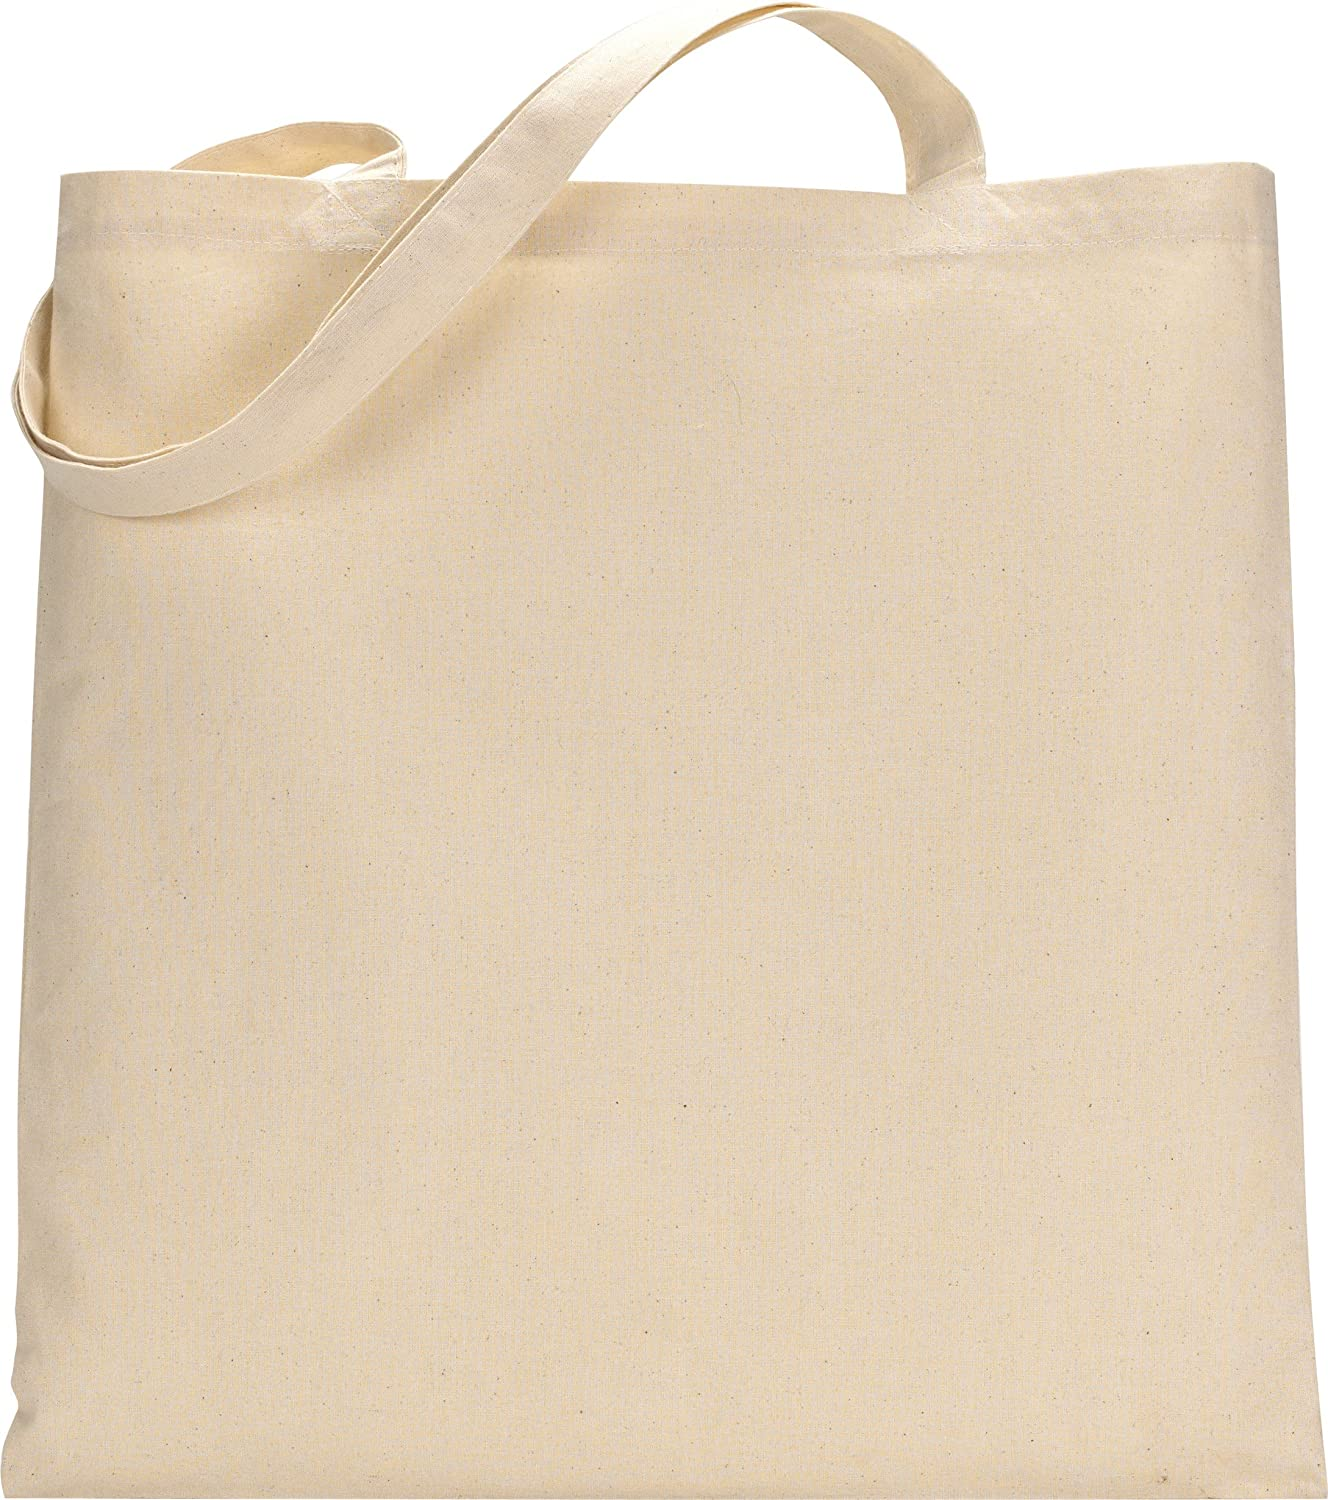 Amazon.com: Set of 25 (twenty five) Natural Cotton Canvas Tote ...